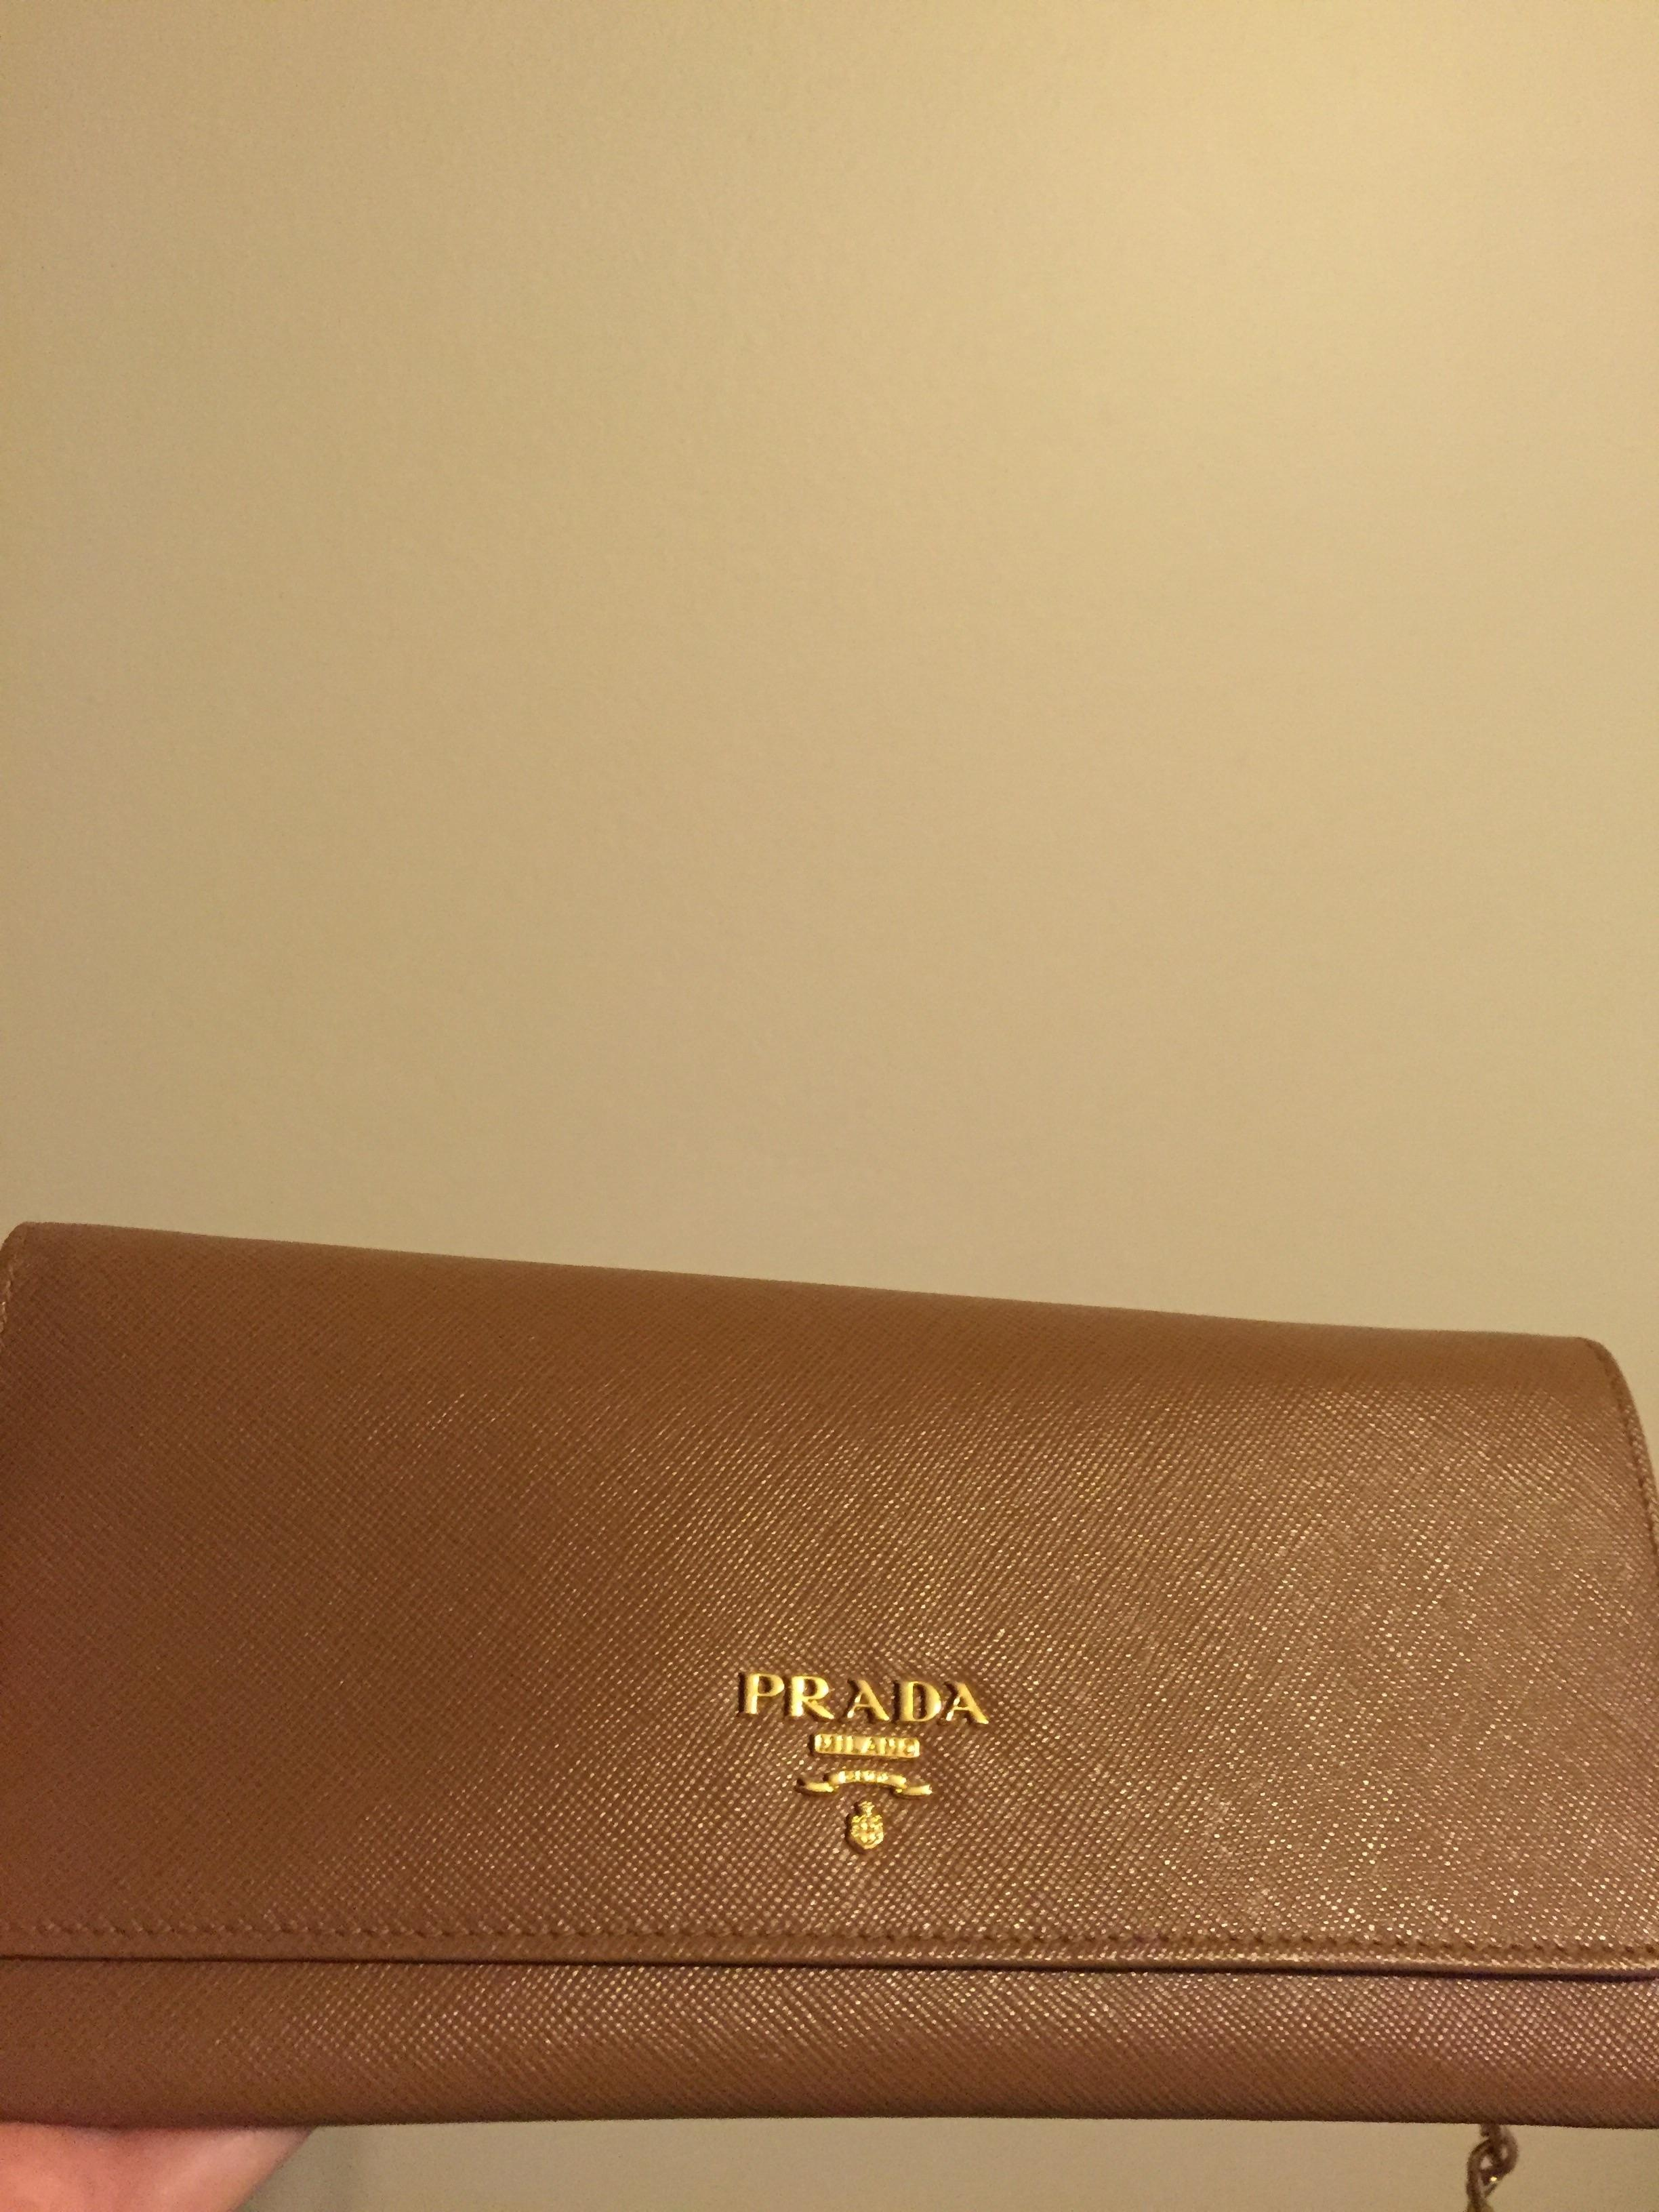 af105dc3c204 canada prada saffiano chain wallet tan nude leather cross body bag tradesy  7d5a4 504ca